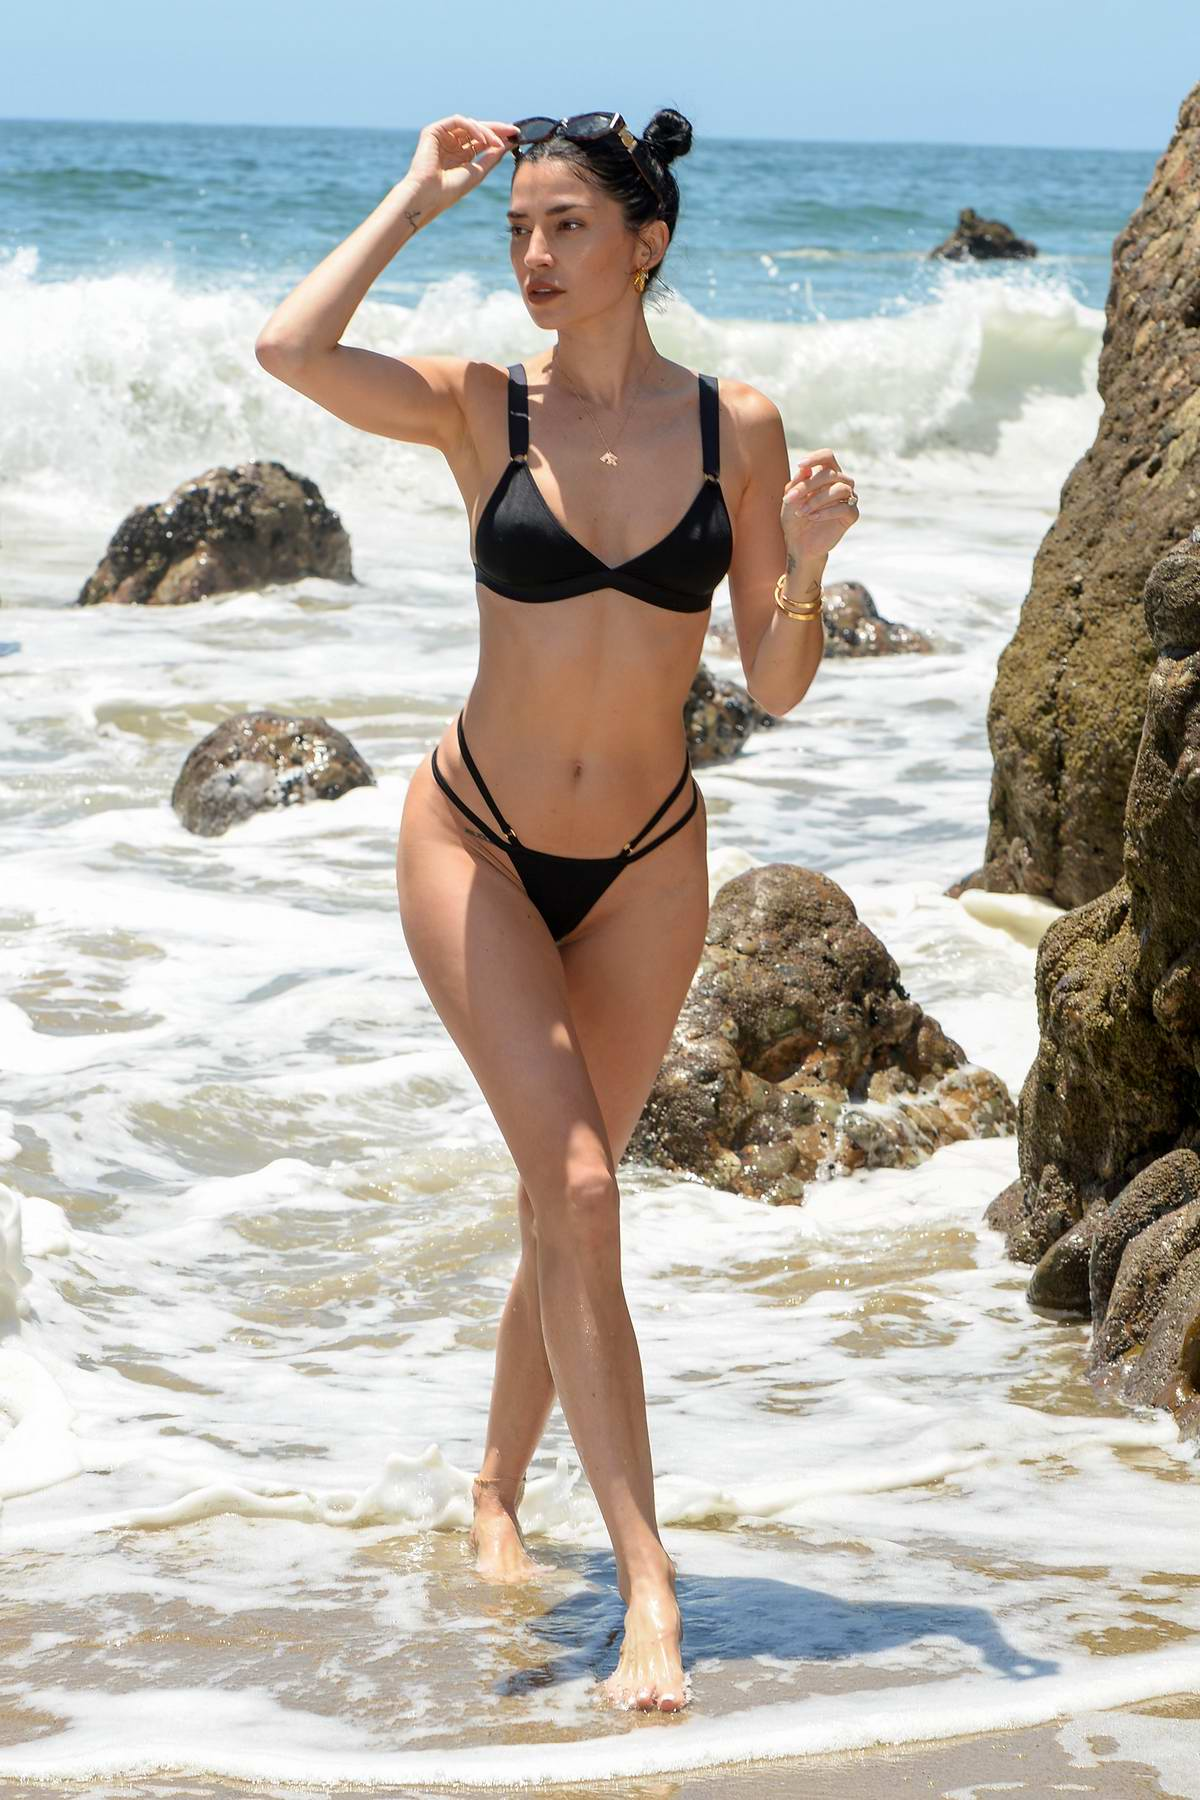 Nicole Williams stuns in a black bikini as she enjoys a beach day with husband Larry English in Malibu, California